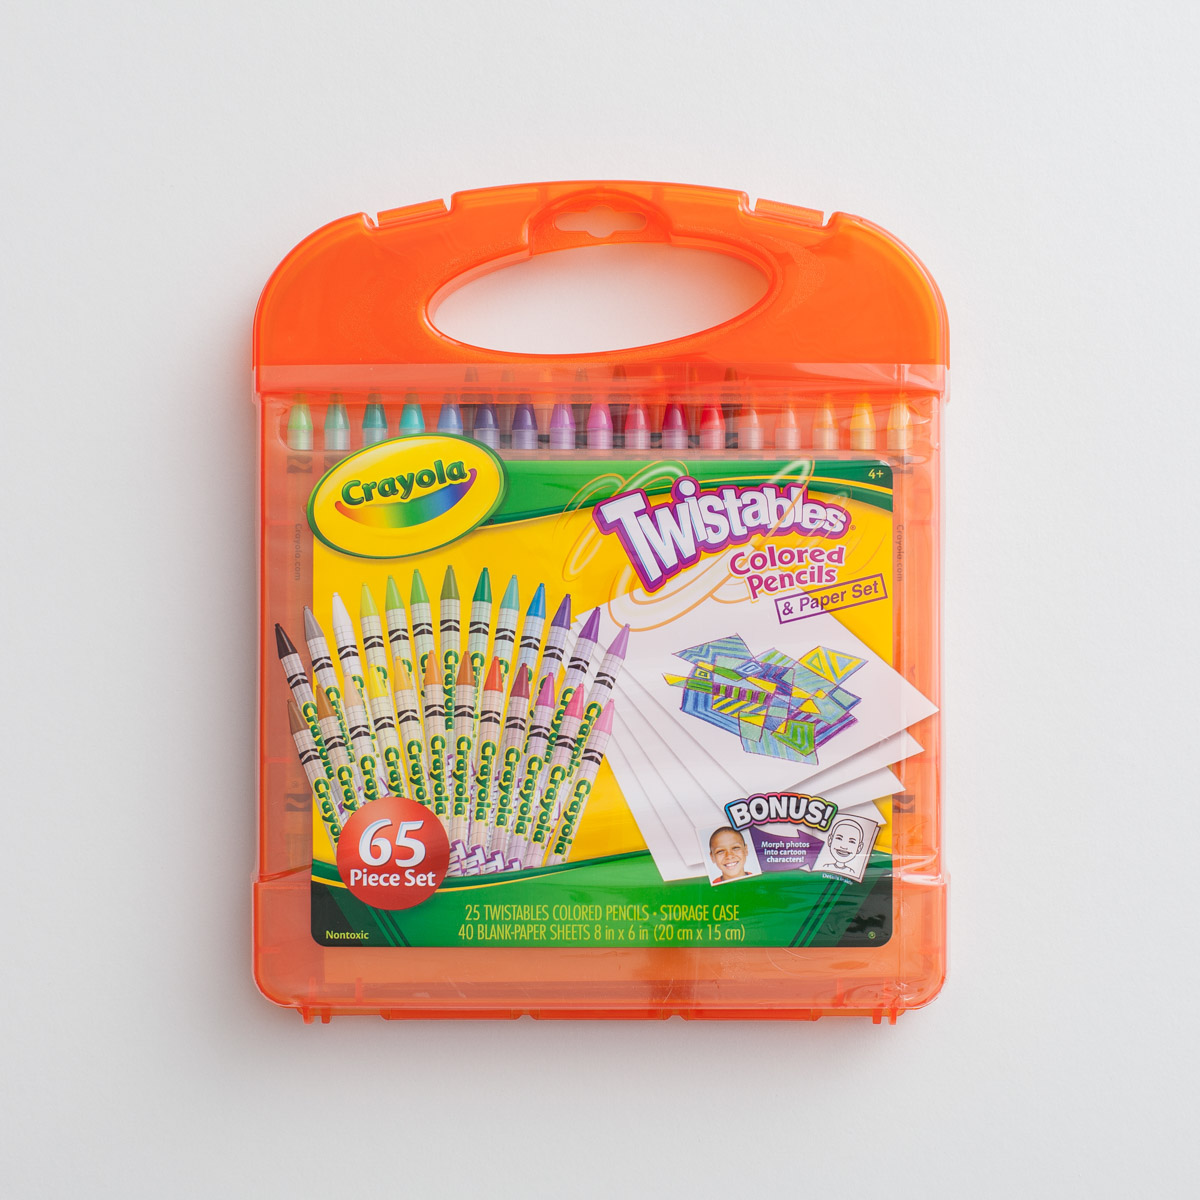 Crayola - Twistables Colored Pencils and Paper Set